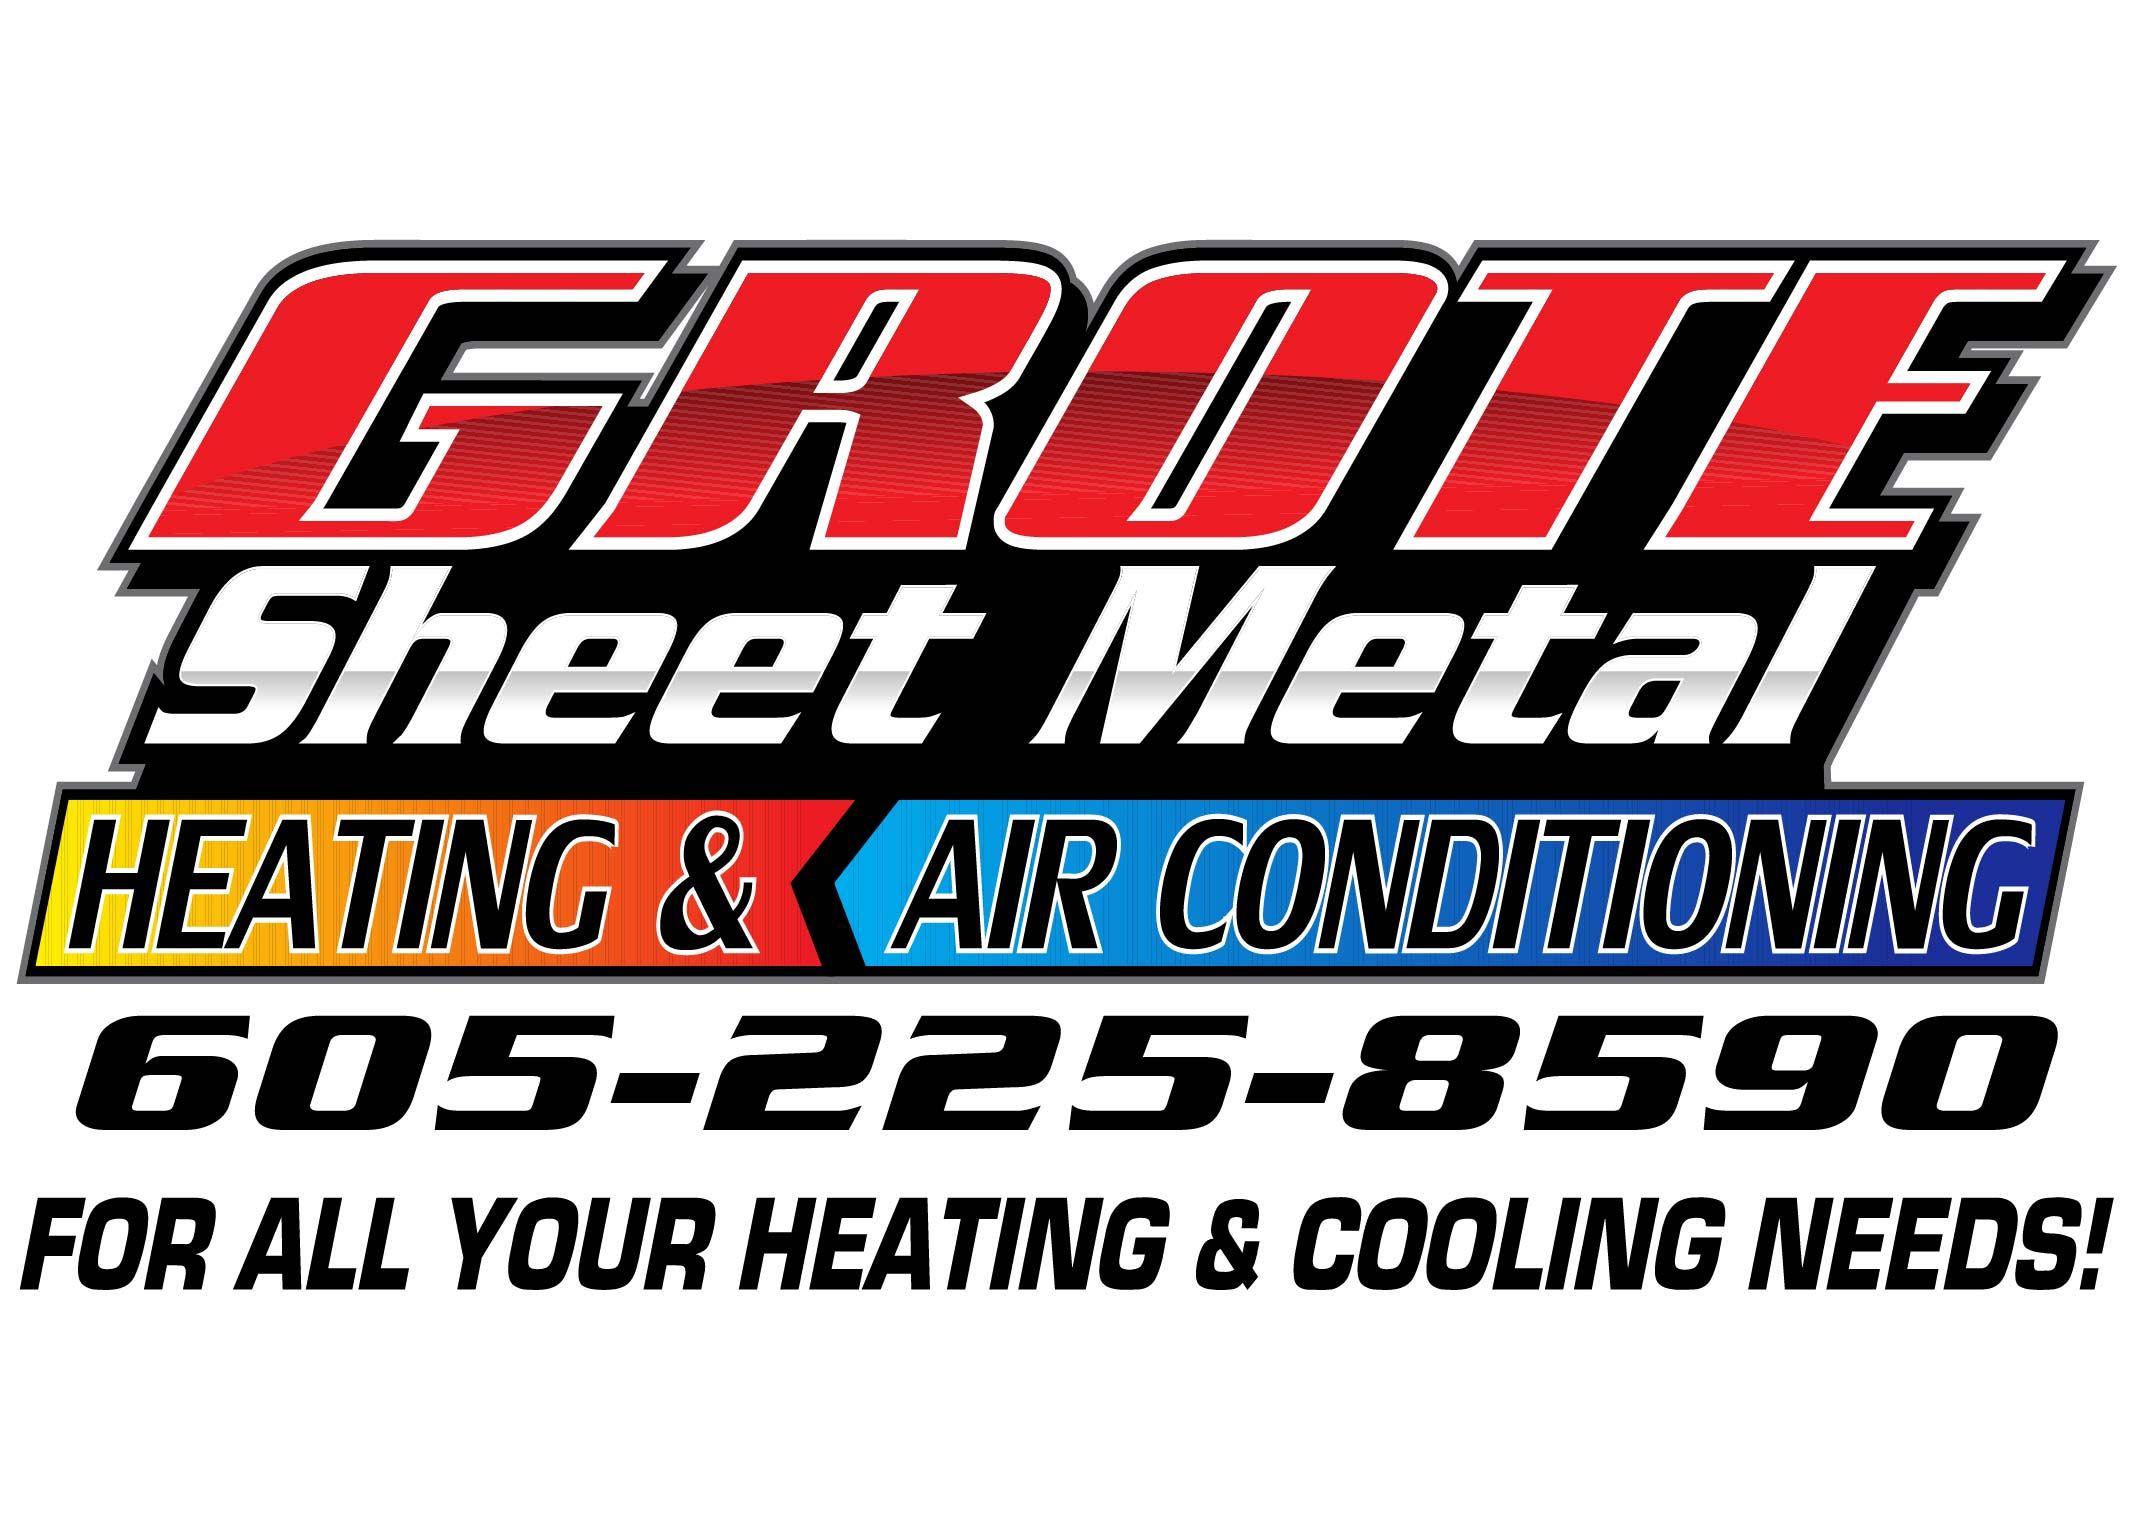 Grote Heating and Cooling-01.jpg